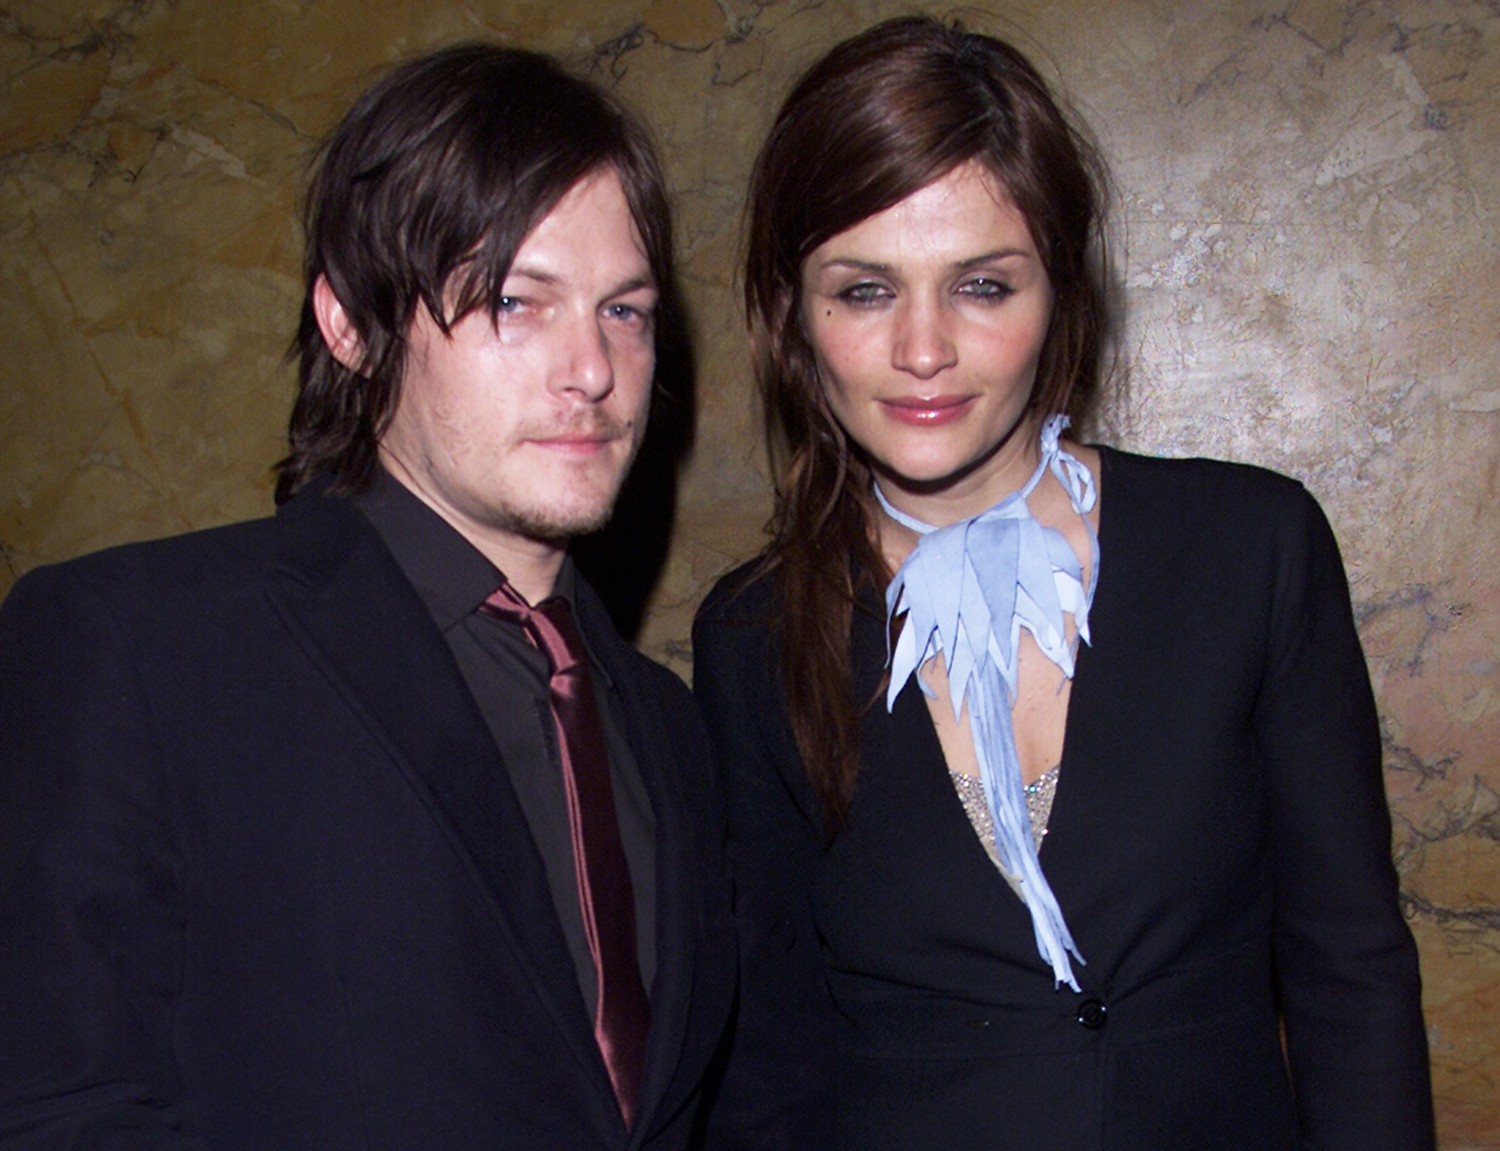 Helena Christensen and boyfriend, Norman Reedus arrive at the 2001 Brit Awards held at Earls Court Exhibition Centre on February 26, 2001 in London.